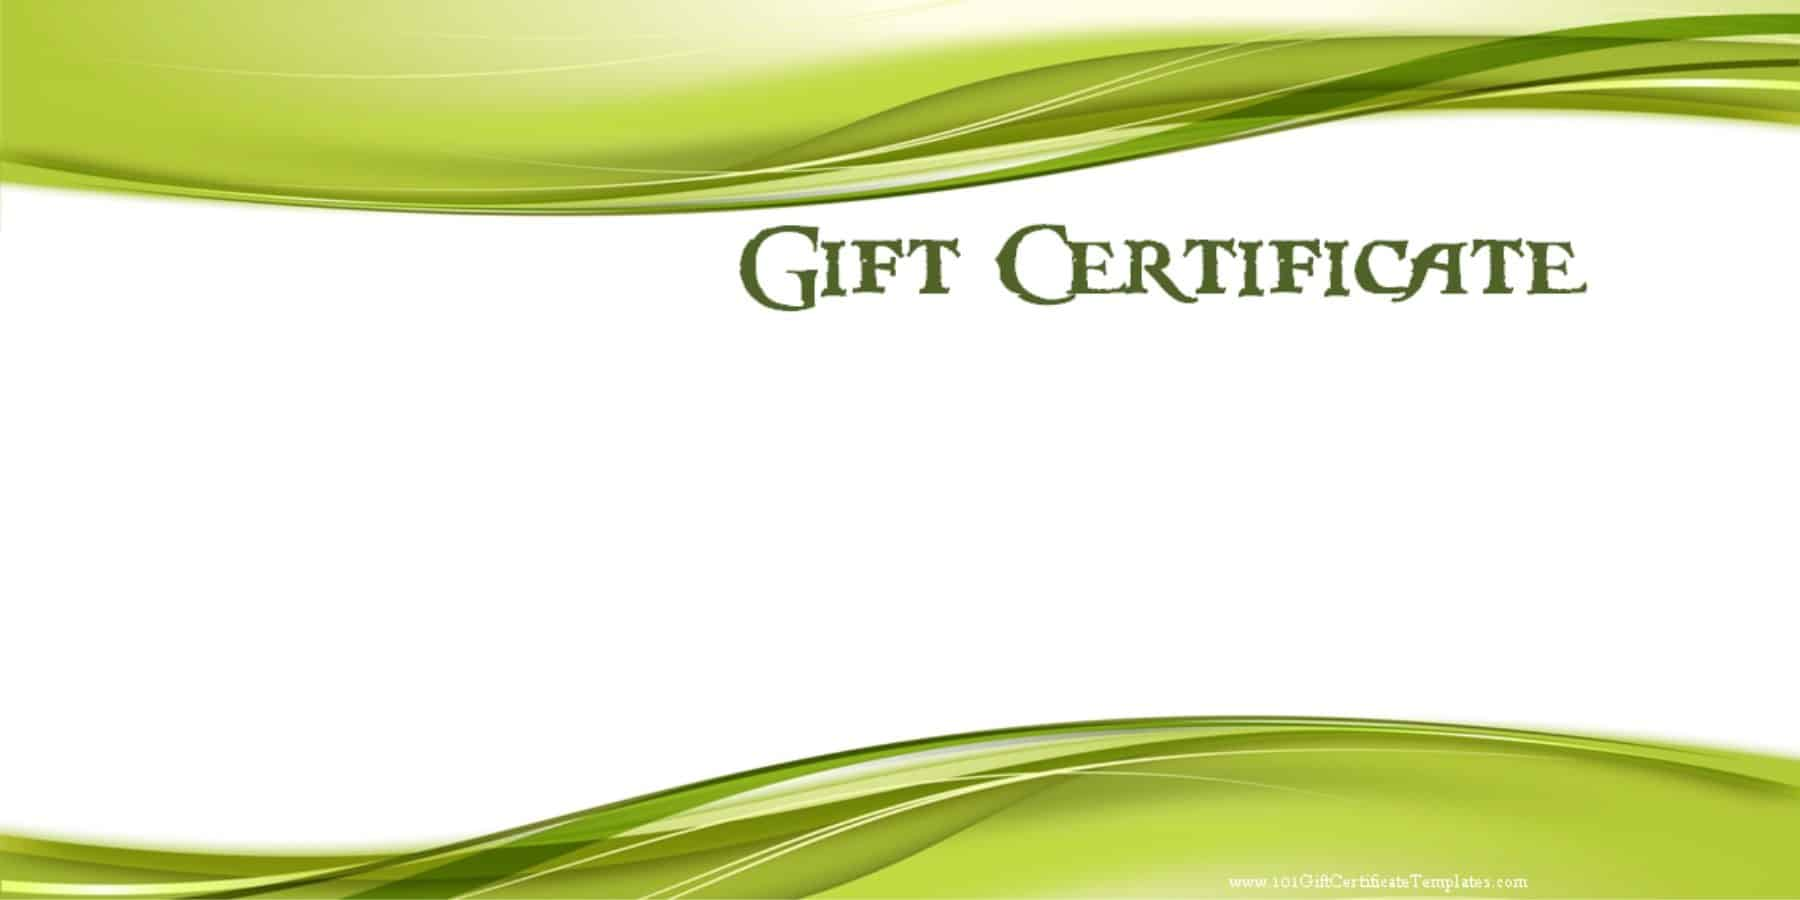 Blank Gift Certificate Which Can Be Customized  Print Your Own Voucher